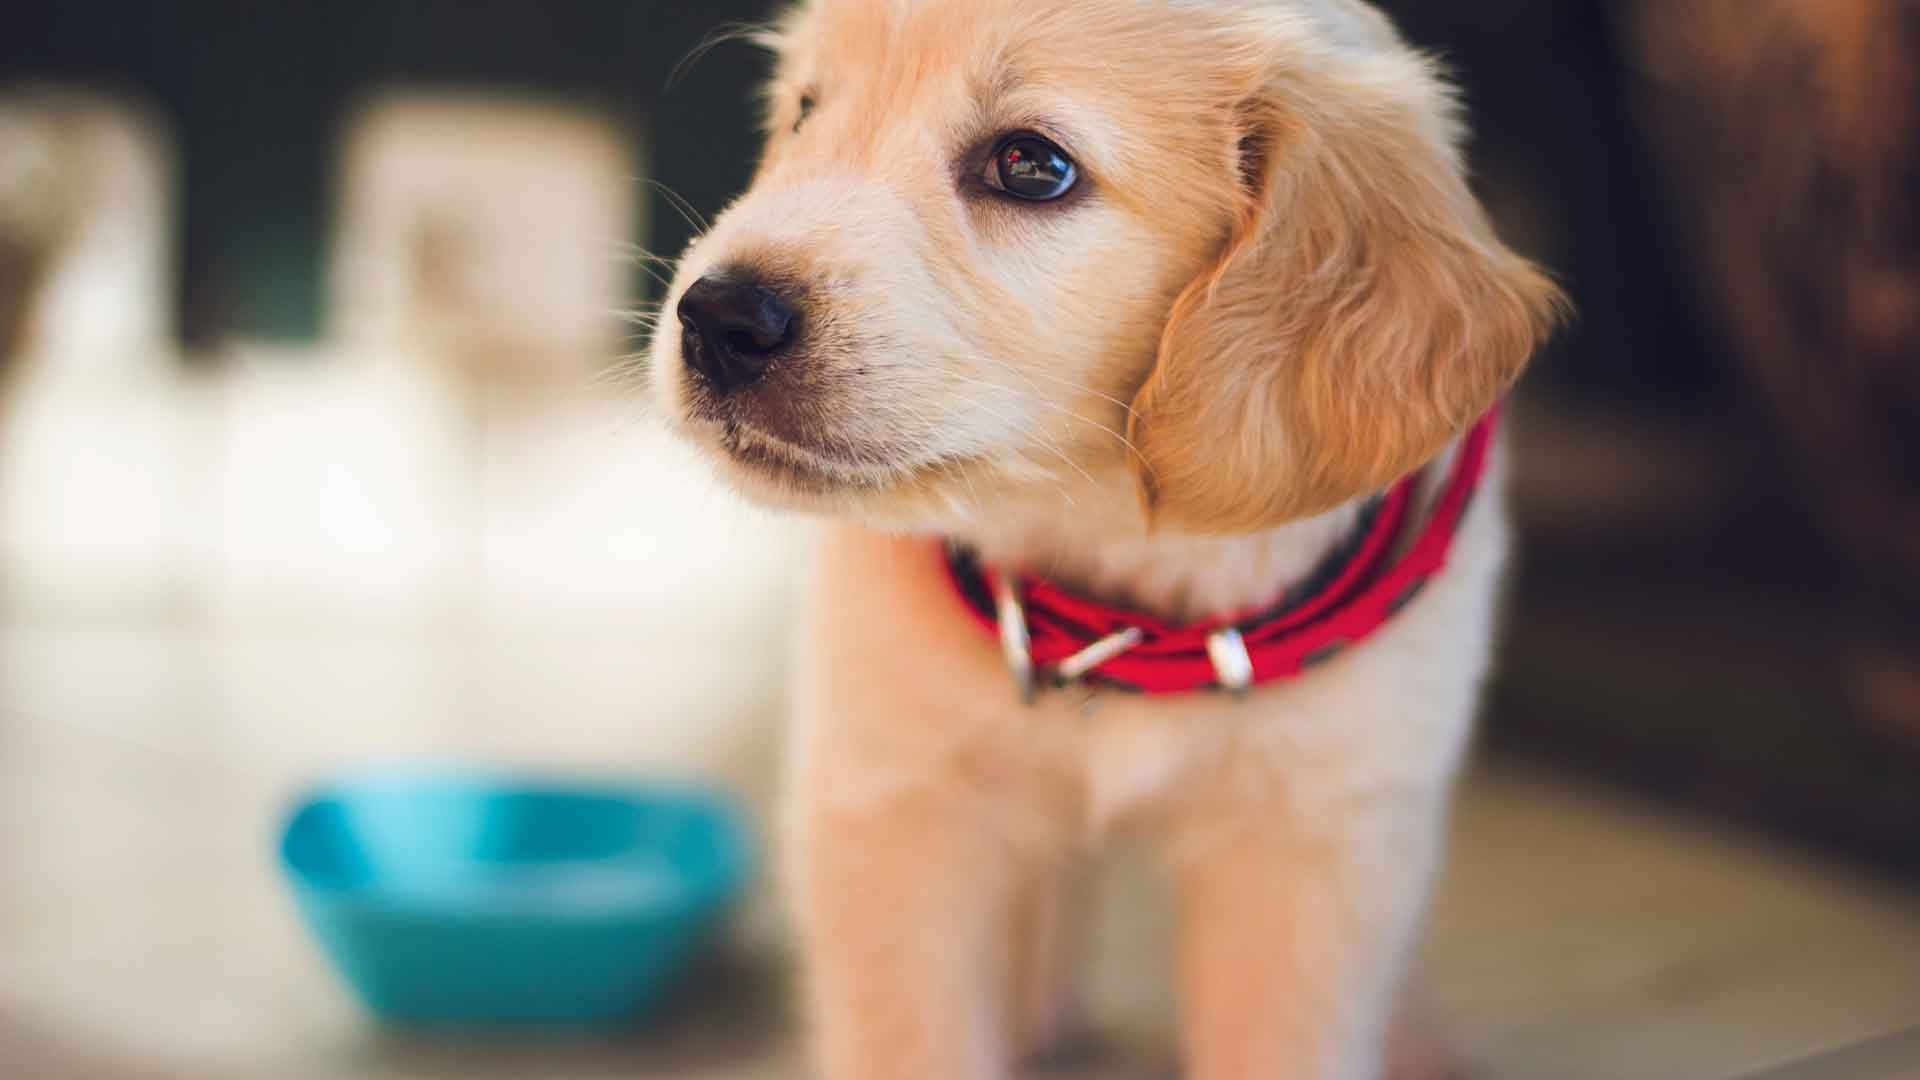 Best Dog Foods For Puppies 2021: Reviews & Buyer's Guide